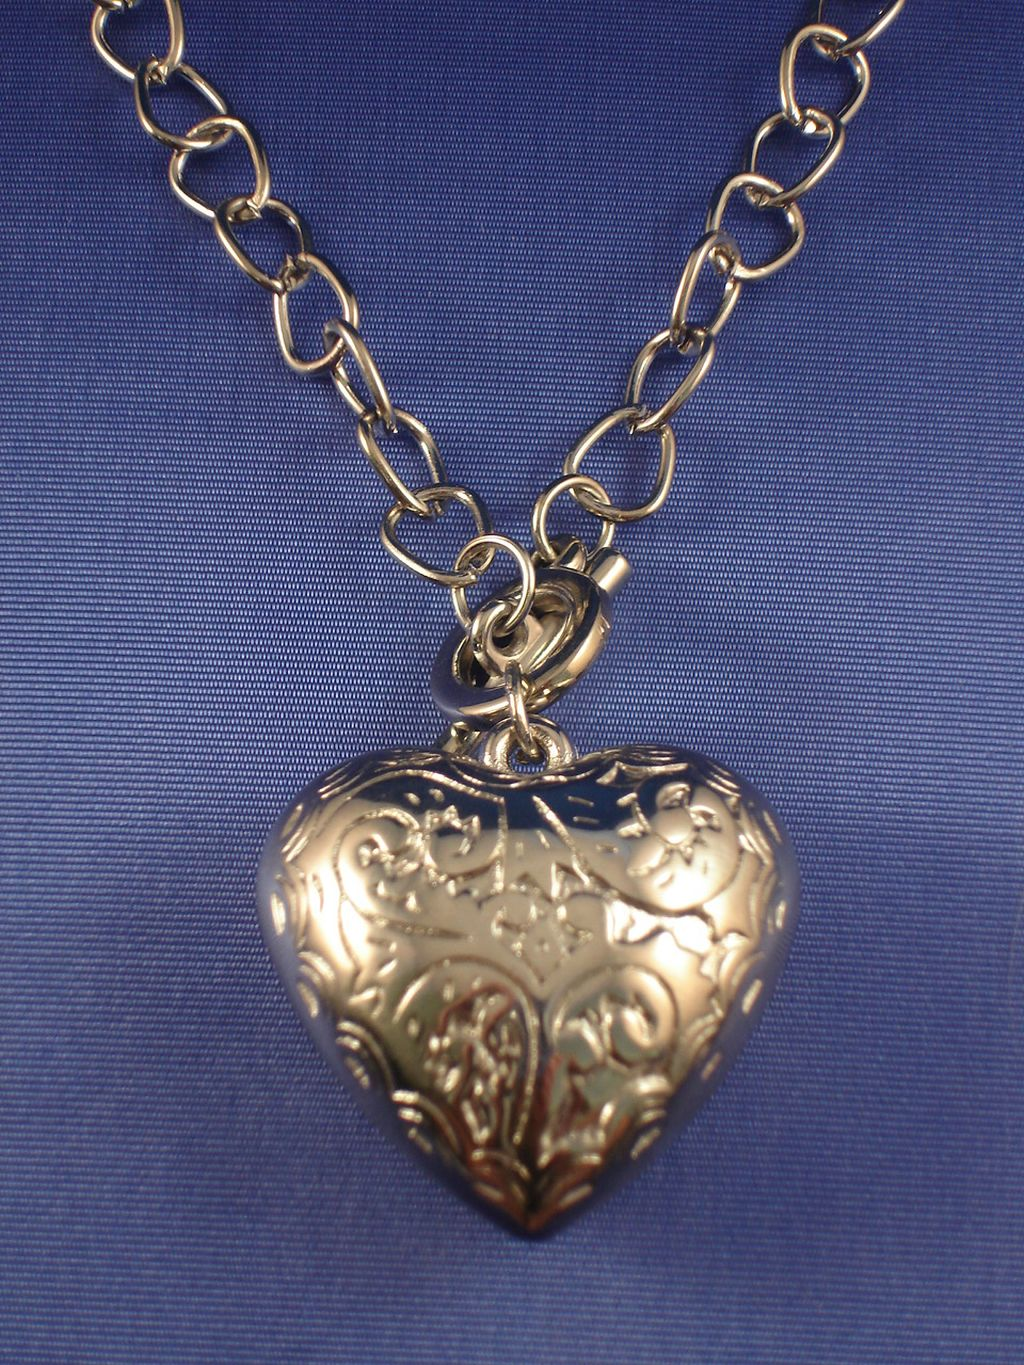 "Silver Tone Heart Pendant with Ornament Necklace, 20"" Chain, Anti-allergic Jewelry"